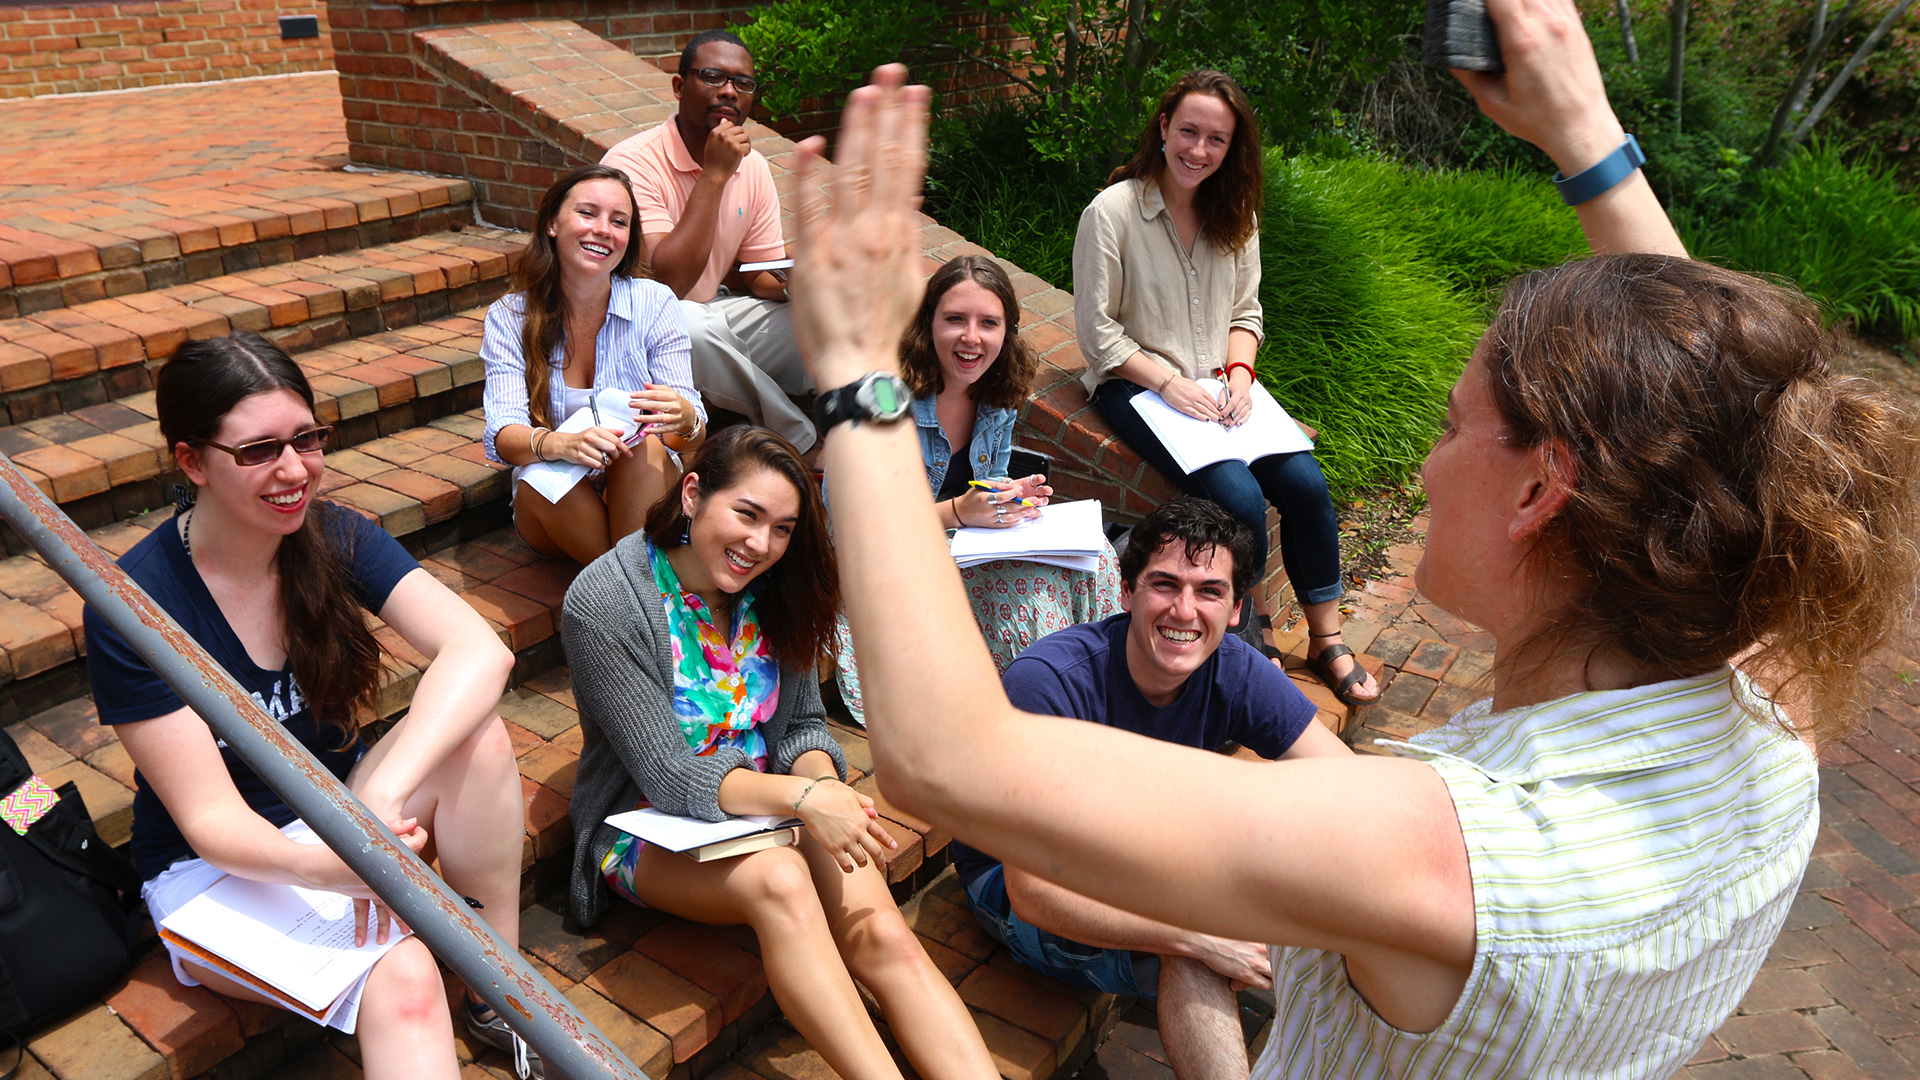 SMCM students enjoy an outdoor class on the brick steps near the science department.